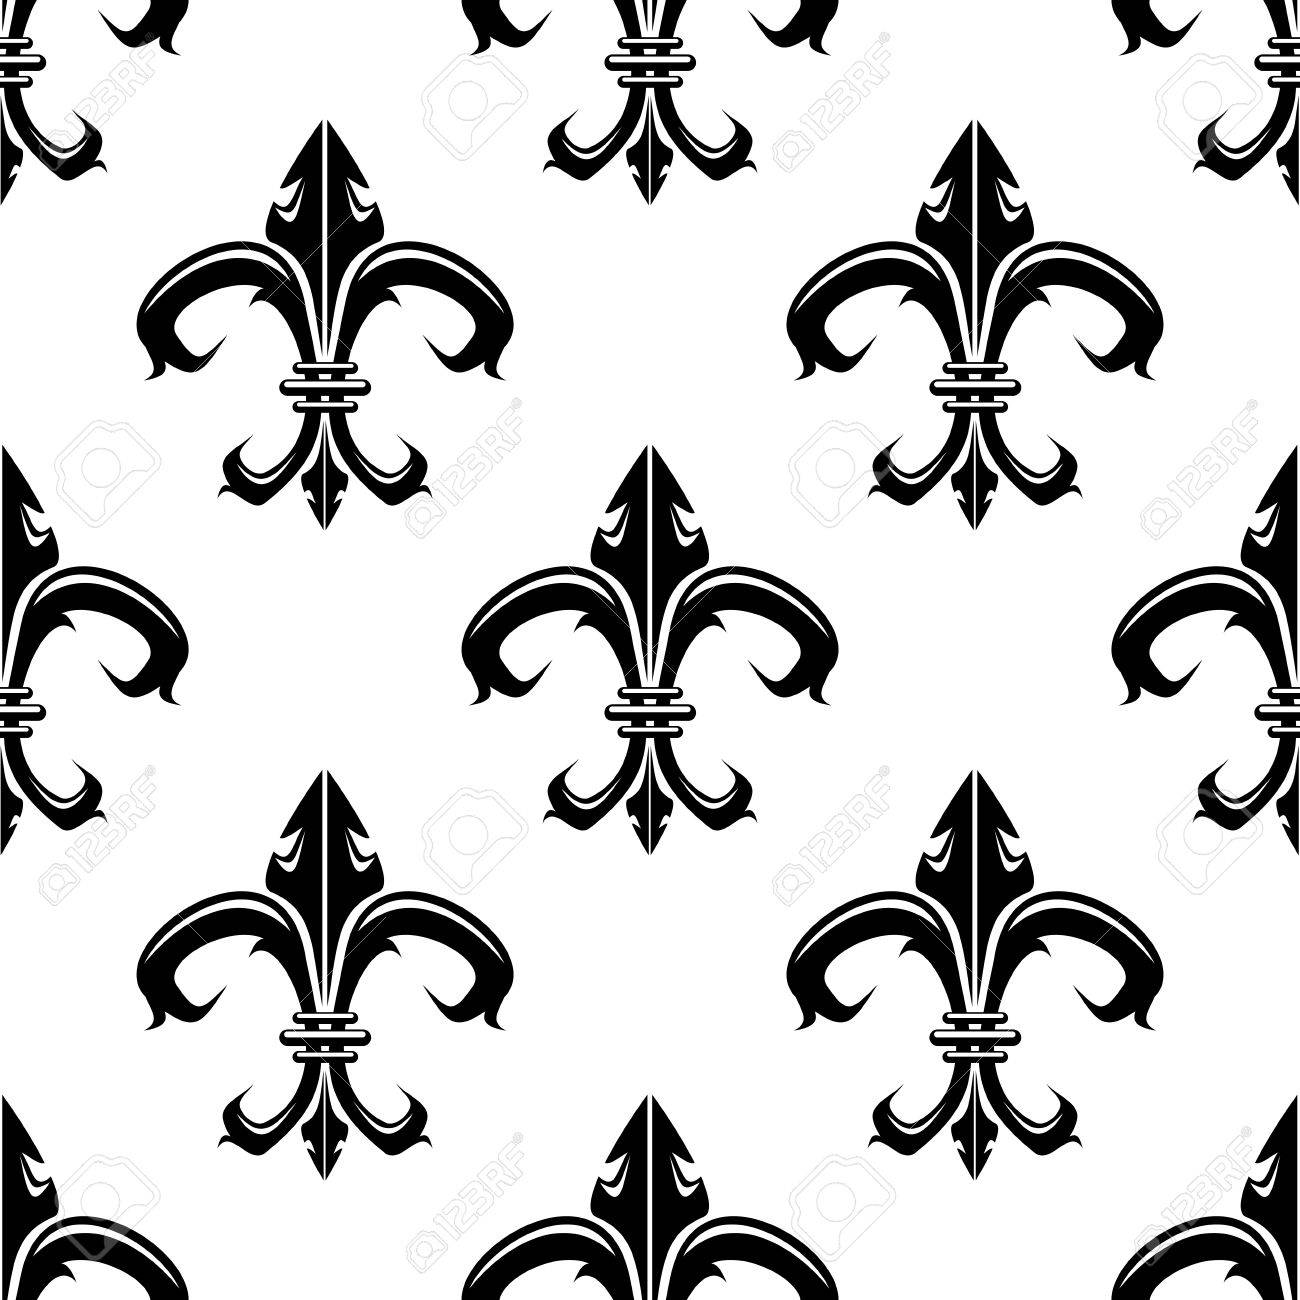 1300x1300 Classical French Black And White Fleur de lis Seamless Background